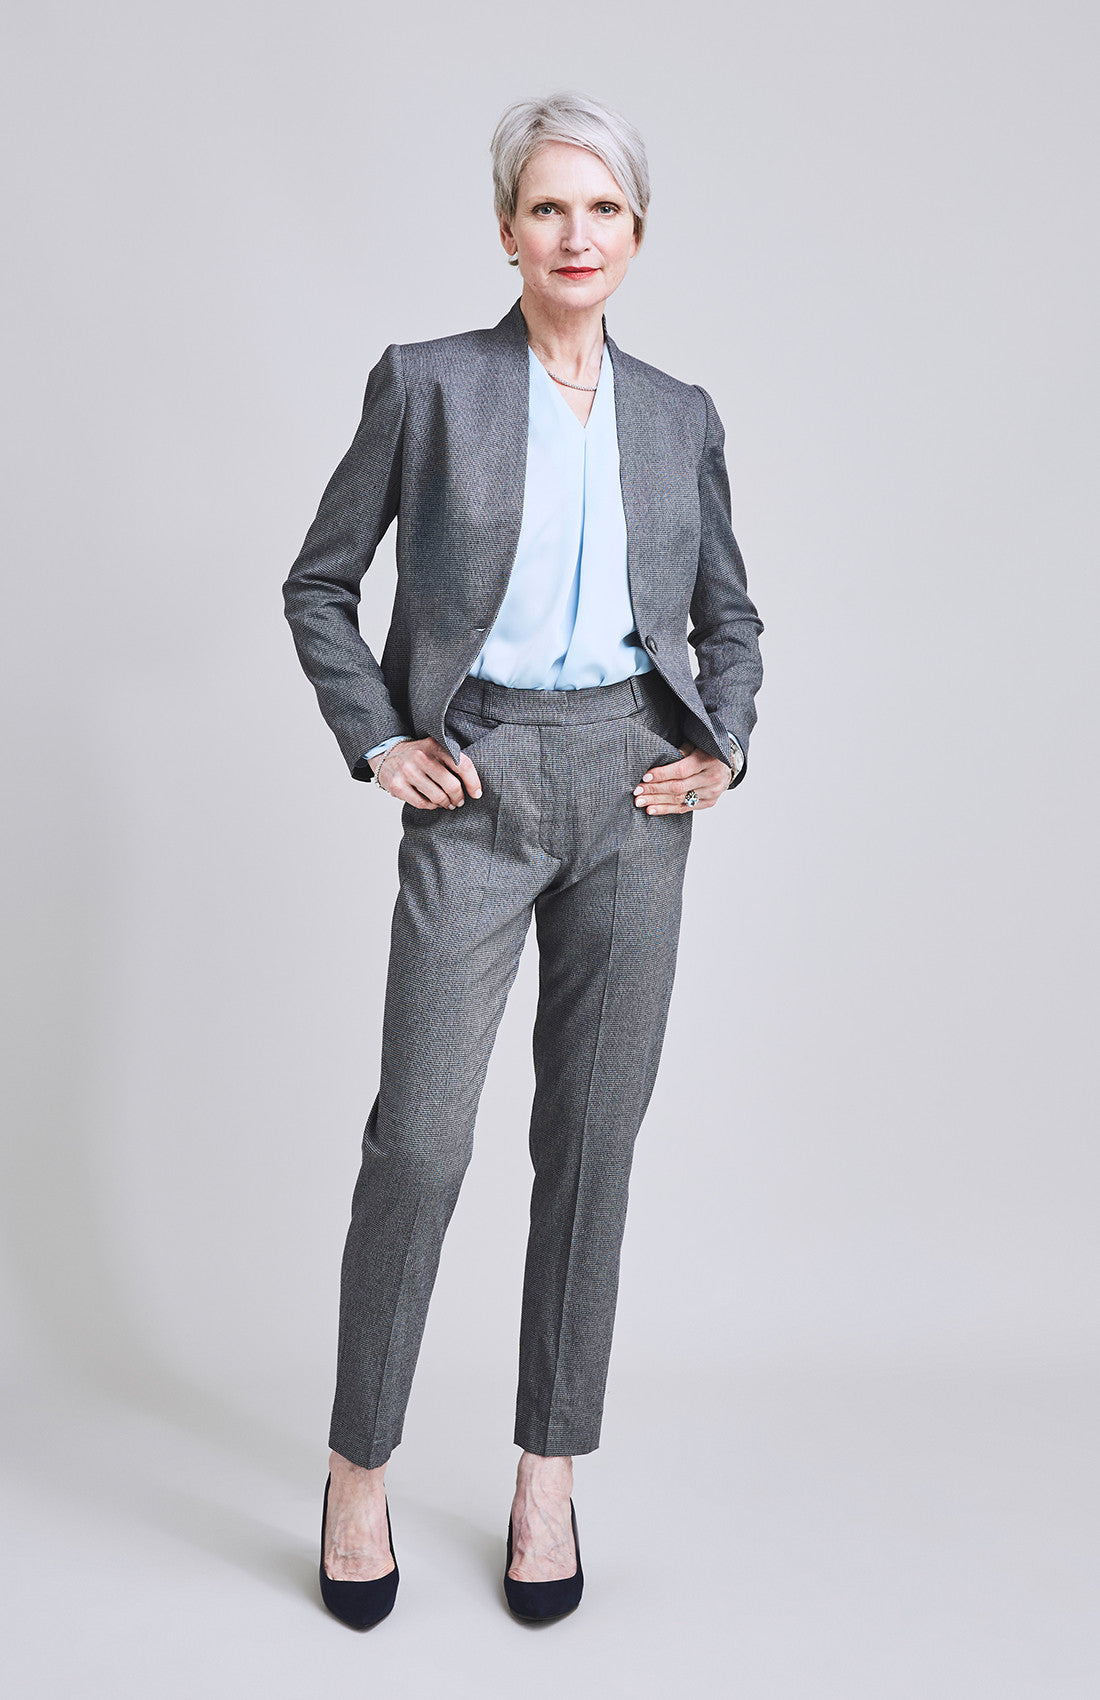 Herringbone tailored cigarette suit trouser for work